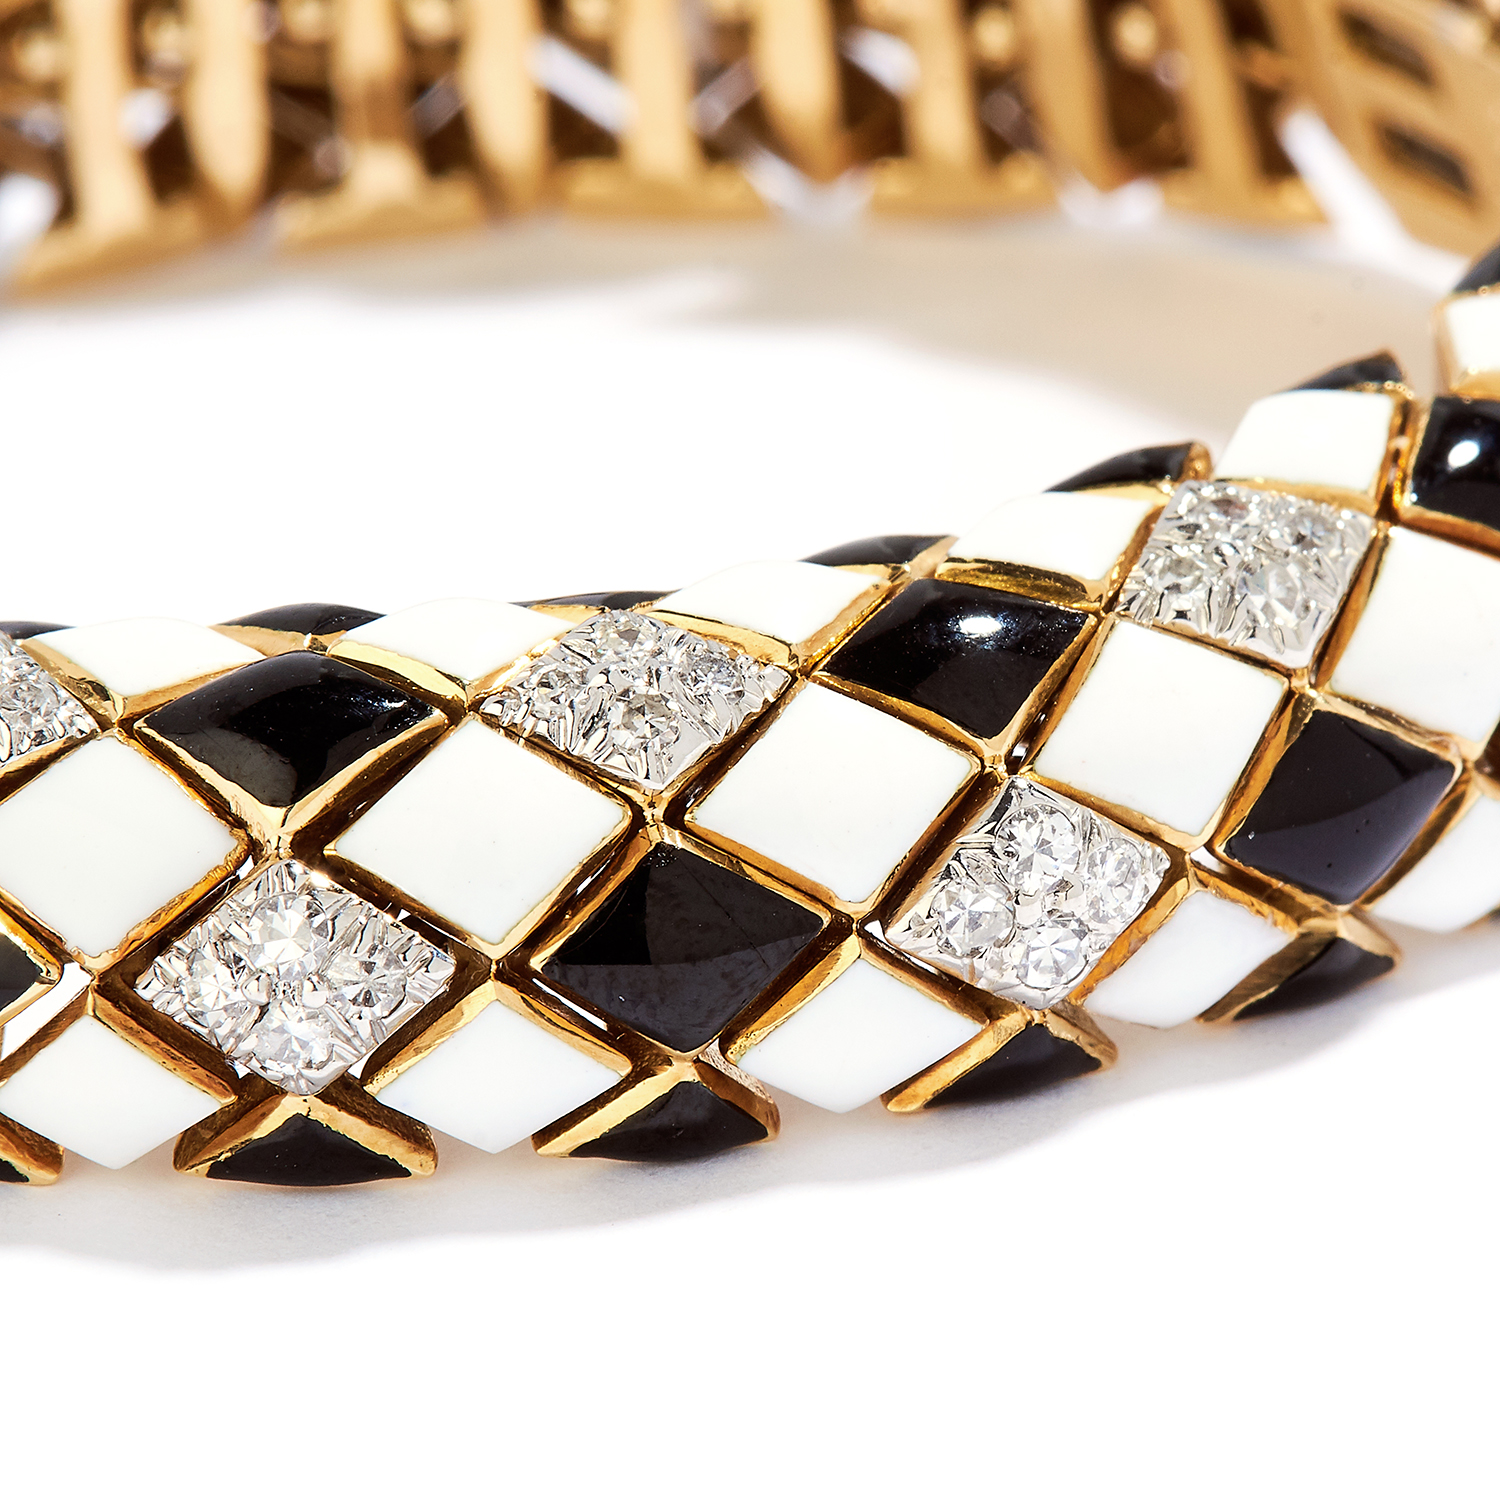 Los 54 - DIAMOND AND ENAMEL BRACELET, DAVID WEBB in 18ct yellow gold, the articulated bracelet is set with